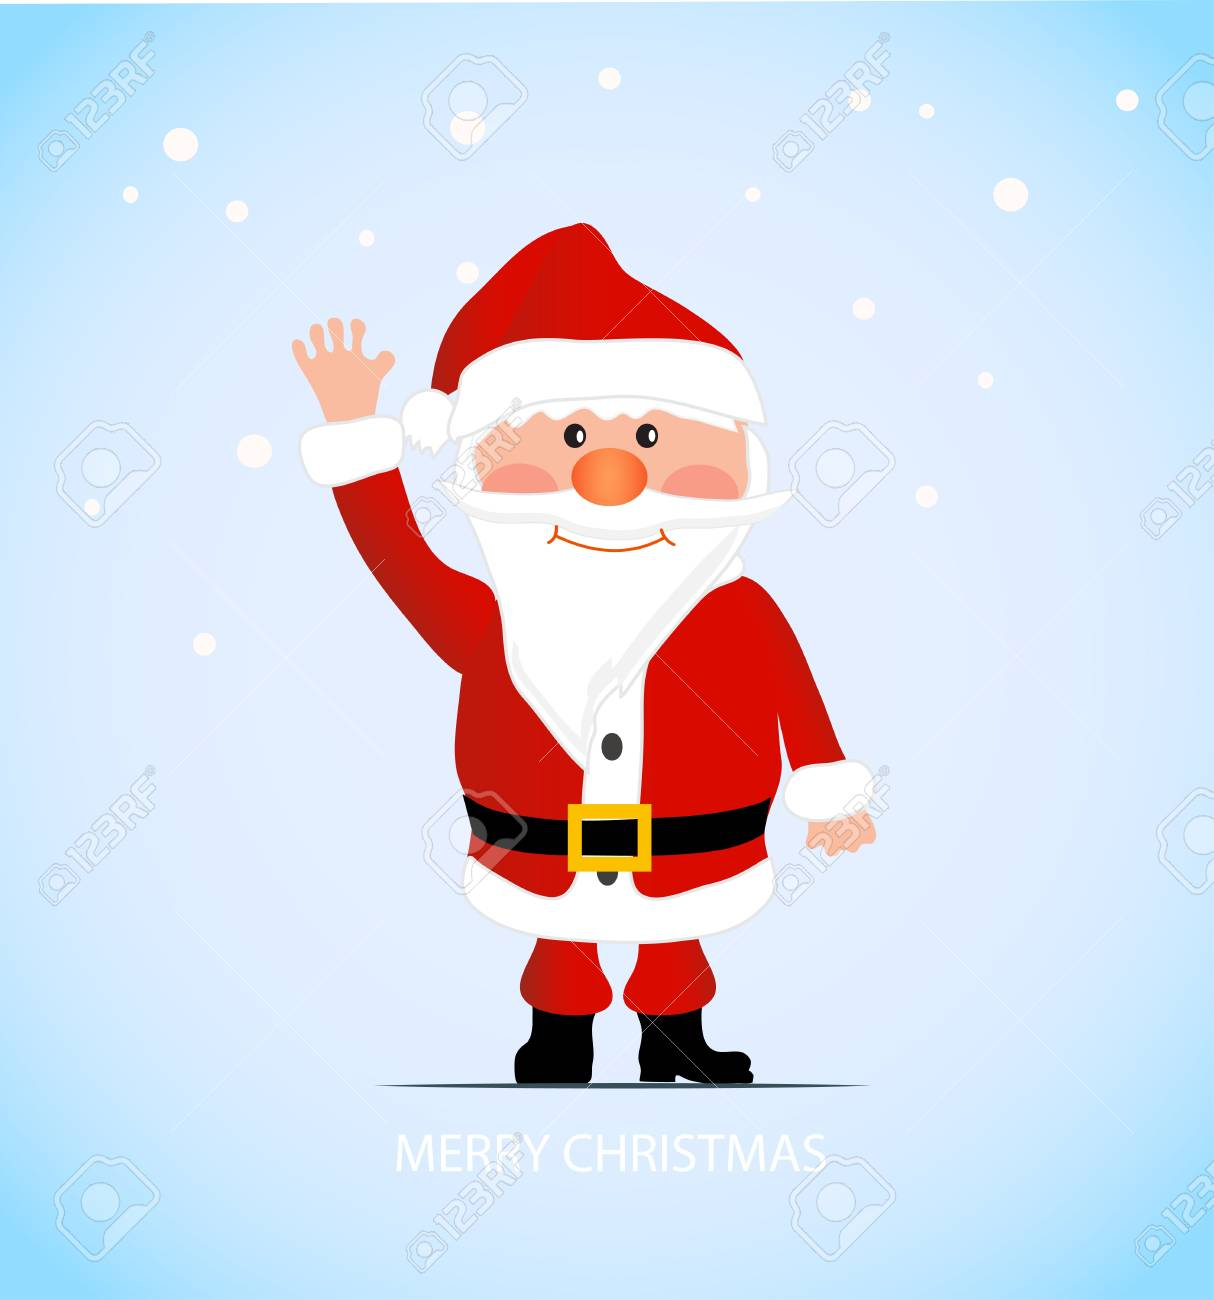 on the image cheerful Santa Claus is presented Stock Vector - 16530957